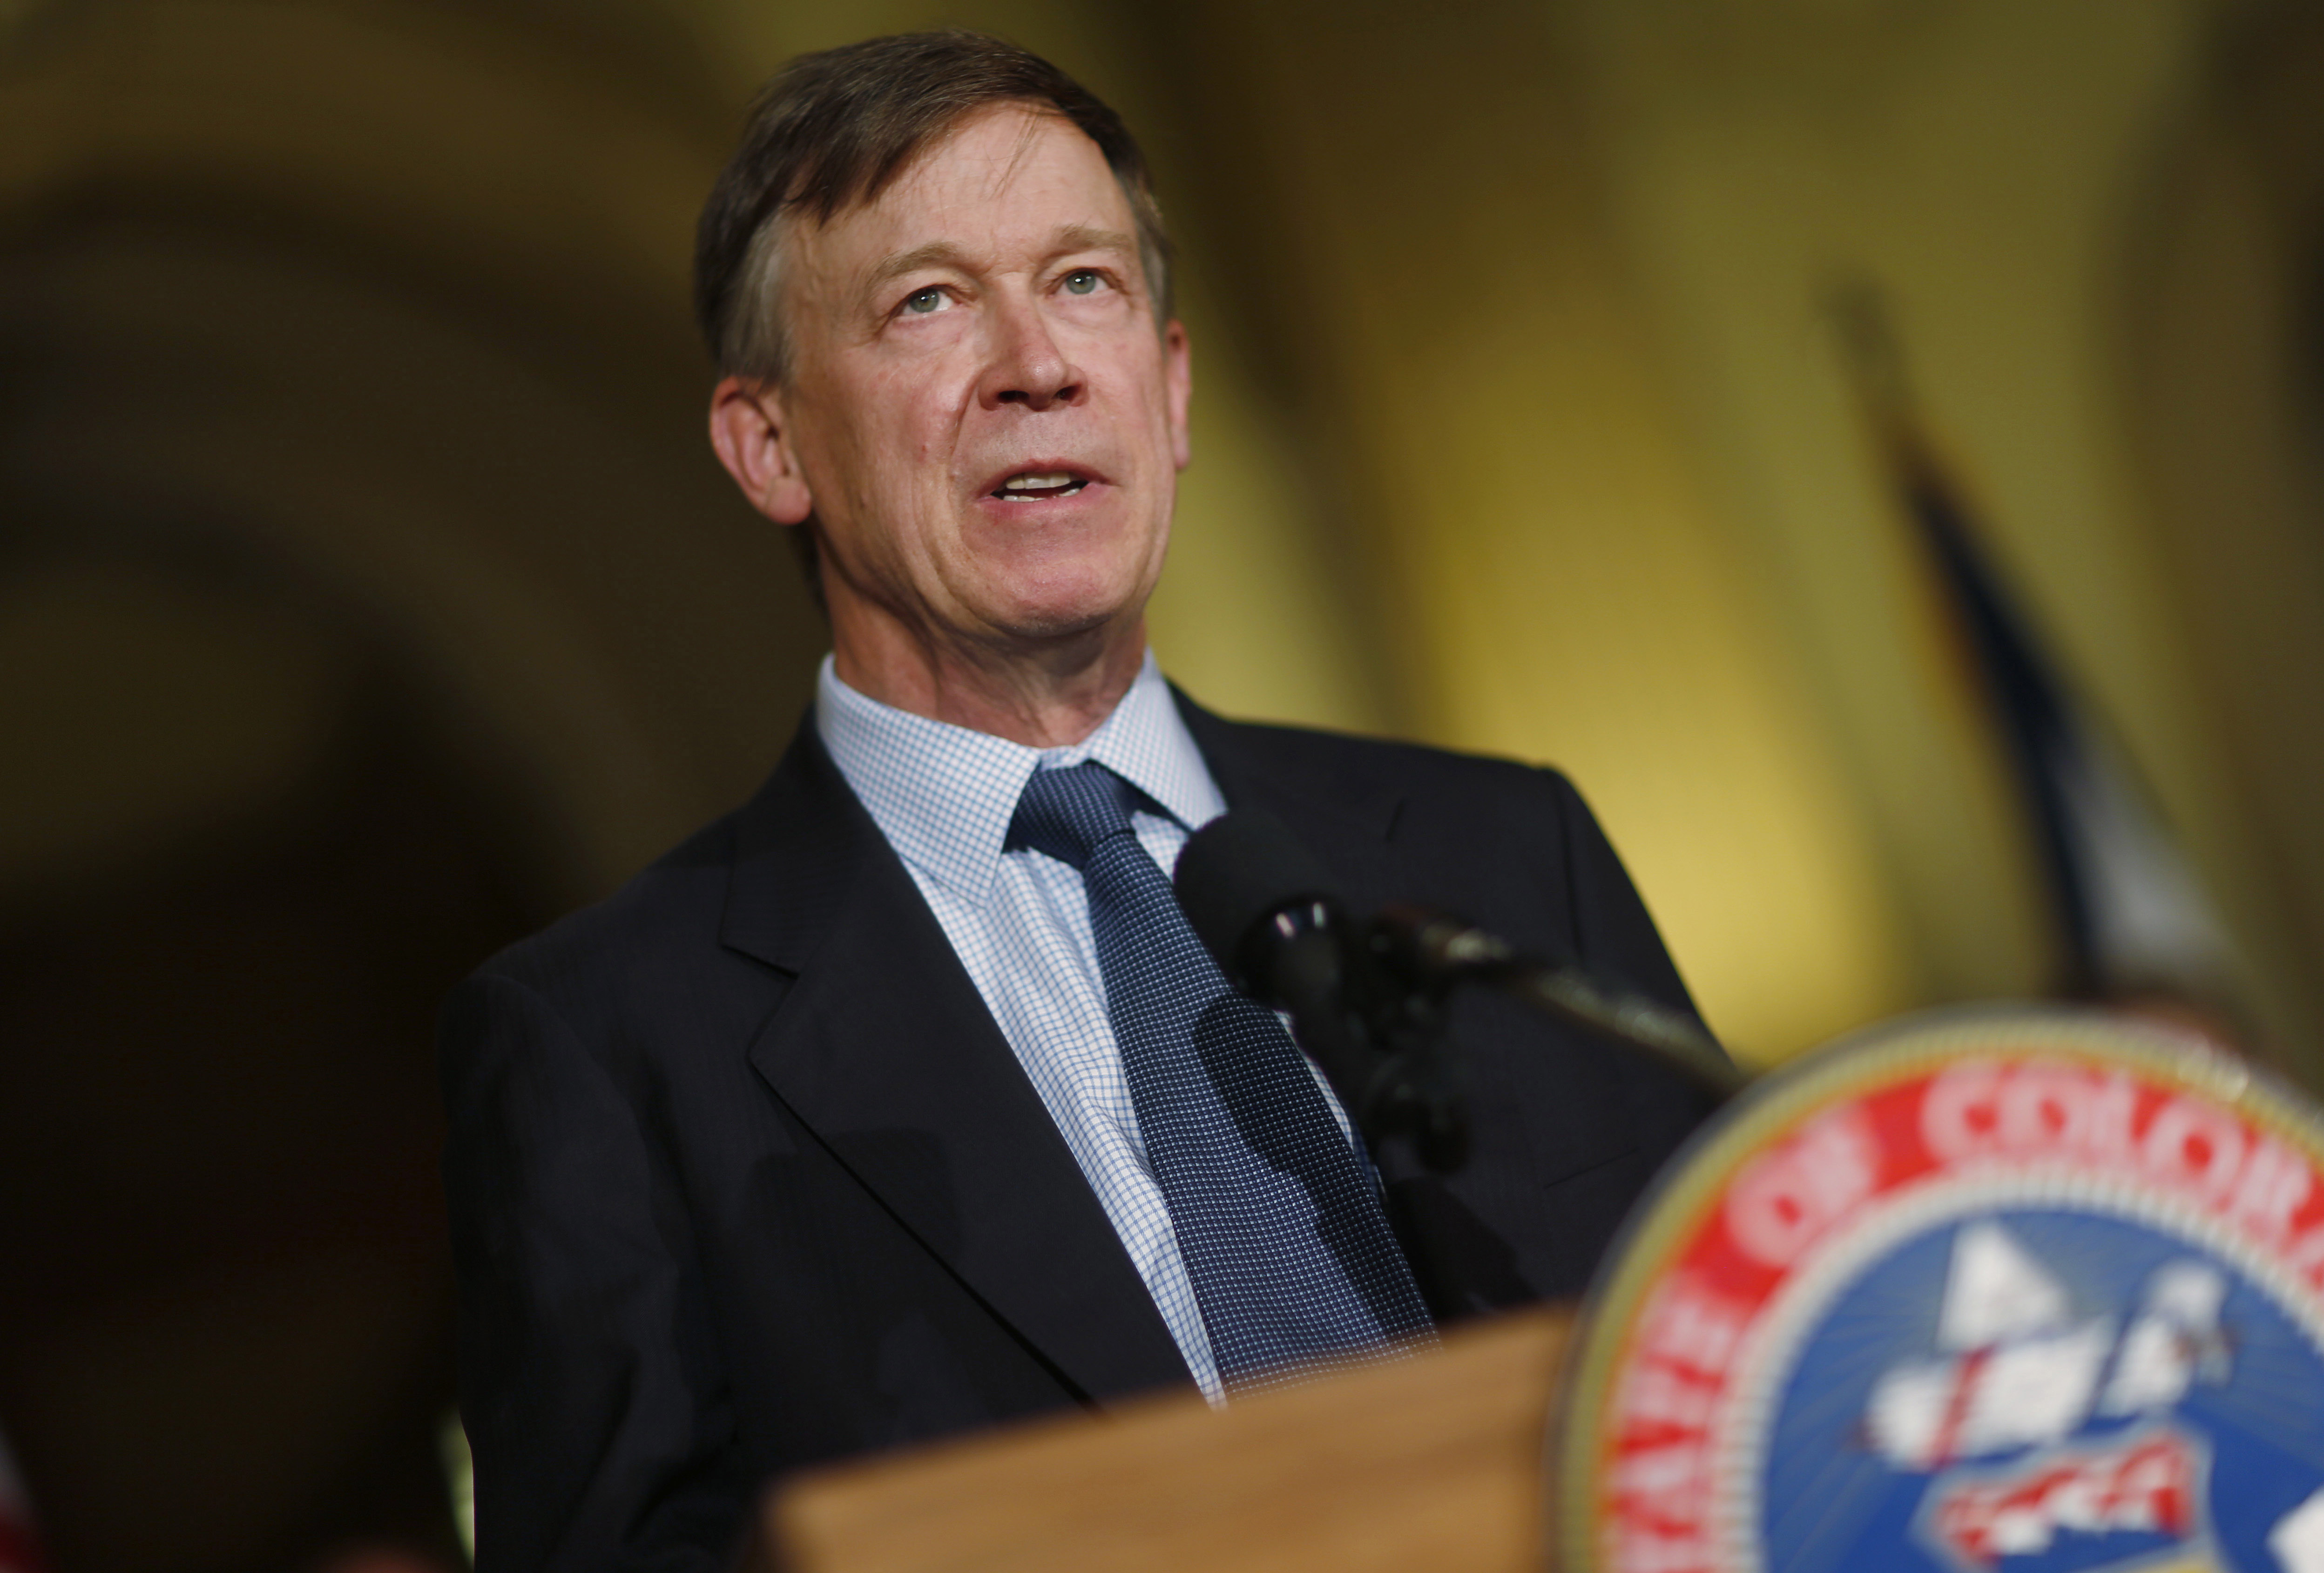 Amendment 66 defeat capped a year of challenges for Gov. Hickenlooper